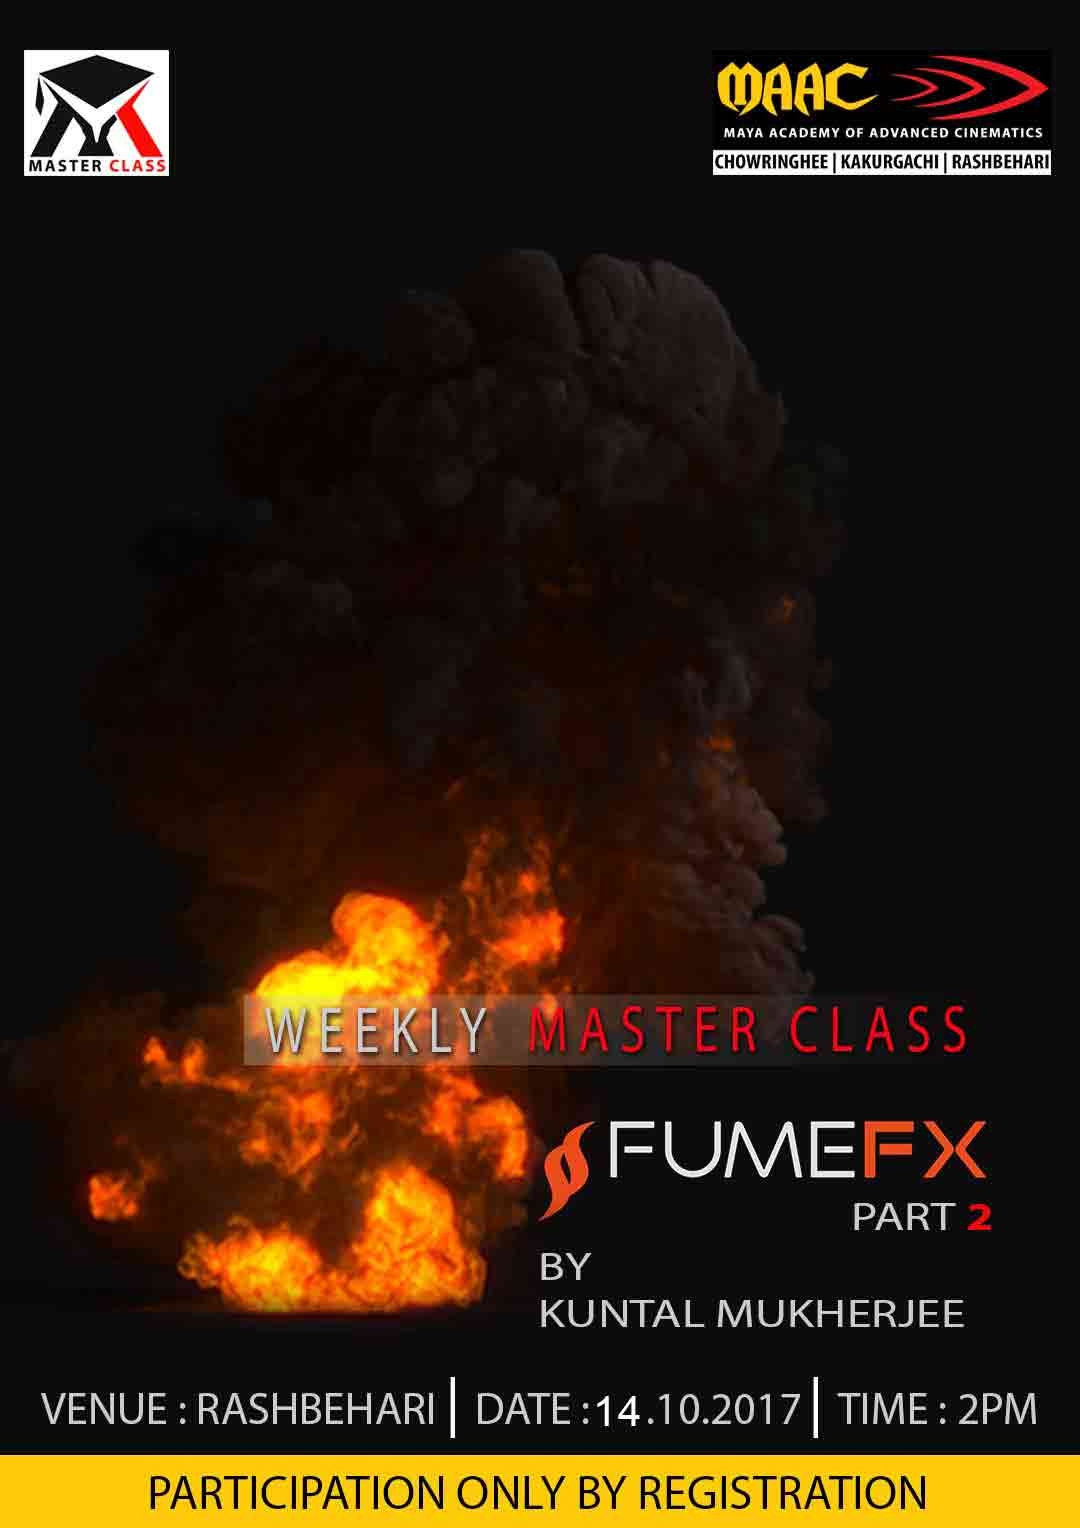 Weekly Master Class on FUMEFX PART-2 - KUNTAL MUKHERJEE